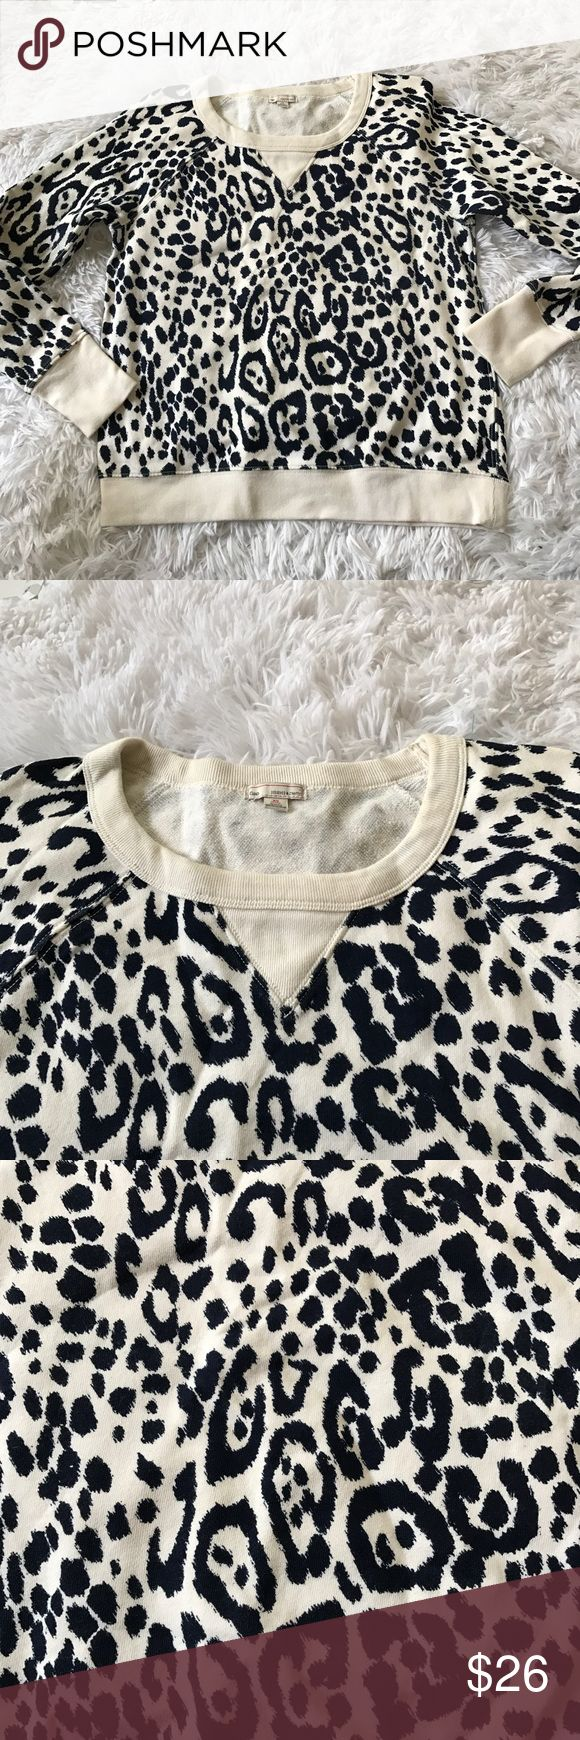 "Gap XS petite pullover Sweater top leopard print Gap  Women's XS petite   long sleeves  100% cotton  Navy blue and white  Leopard print  Great condition  Measurements laying flat:  Armpit to armpit: 19""  Length from armpit: 13.5"" GAP Tops Sweatshirts & Hoodies"